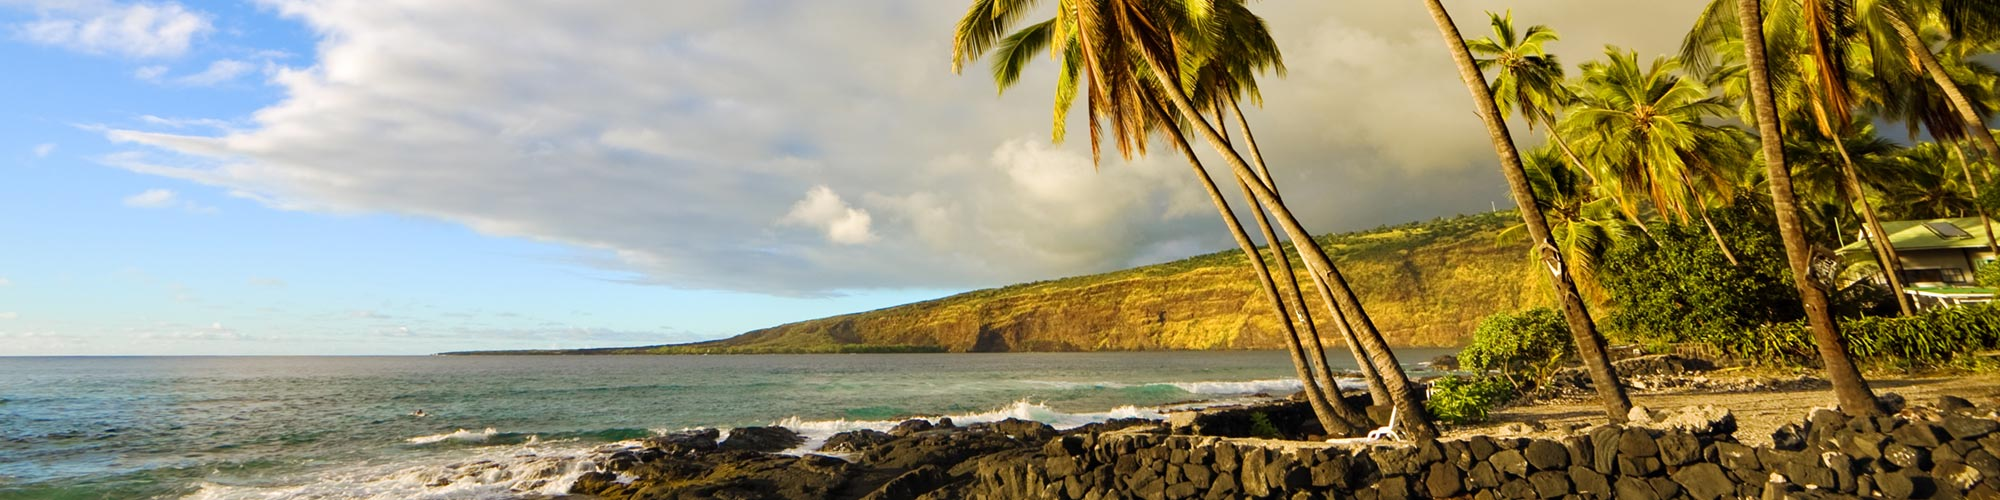 Kona, The Big Island coastline